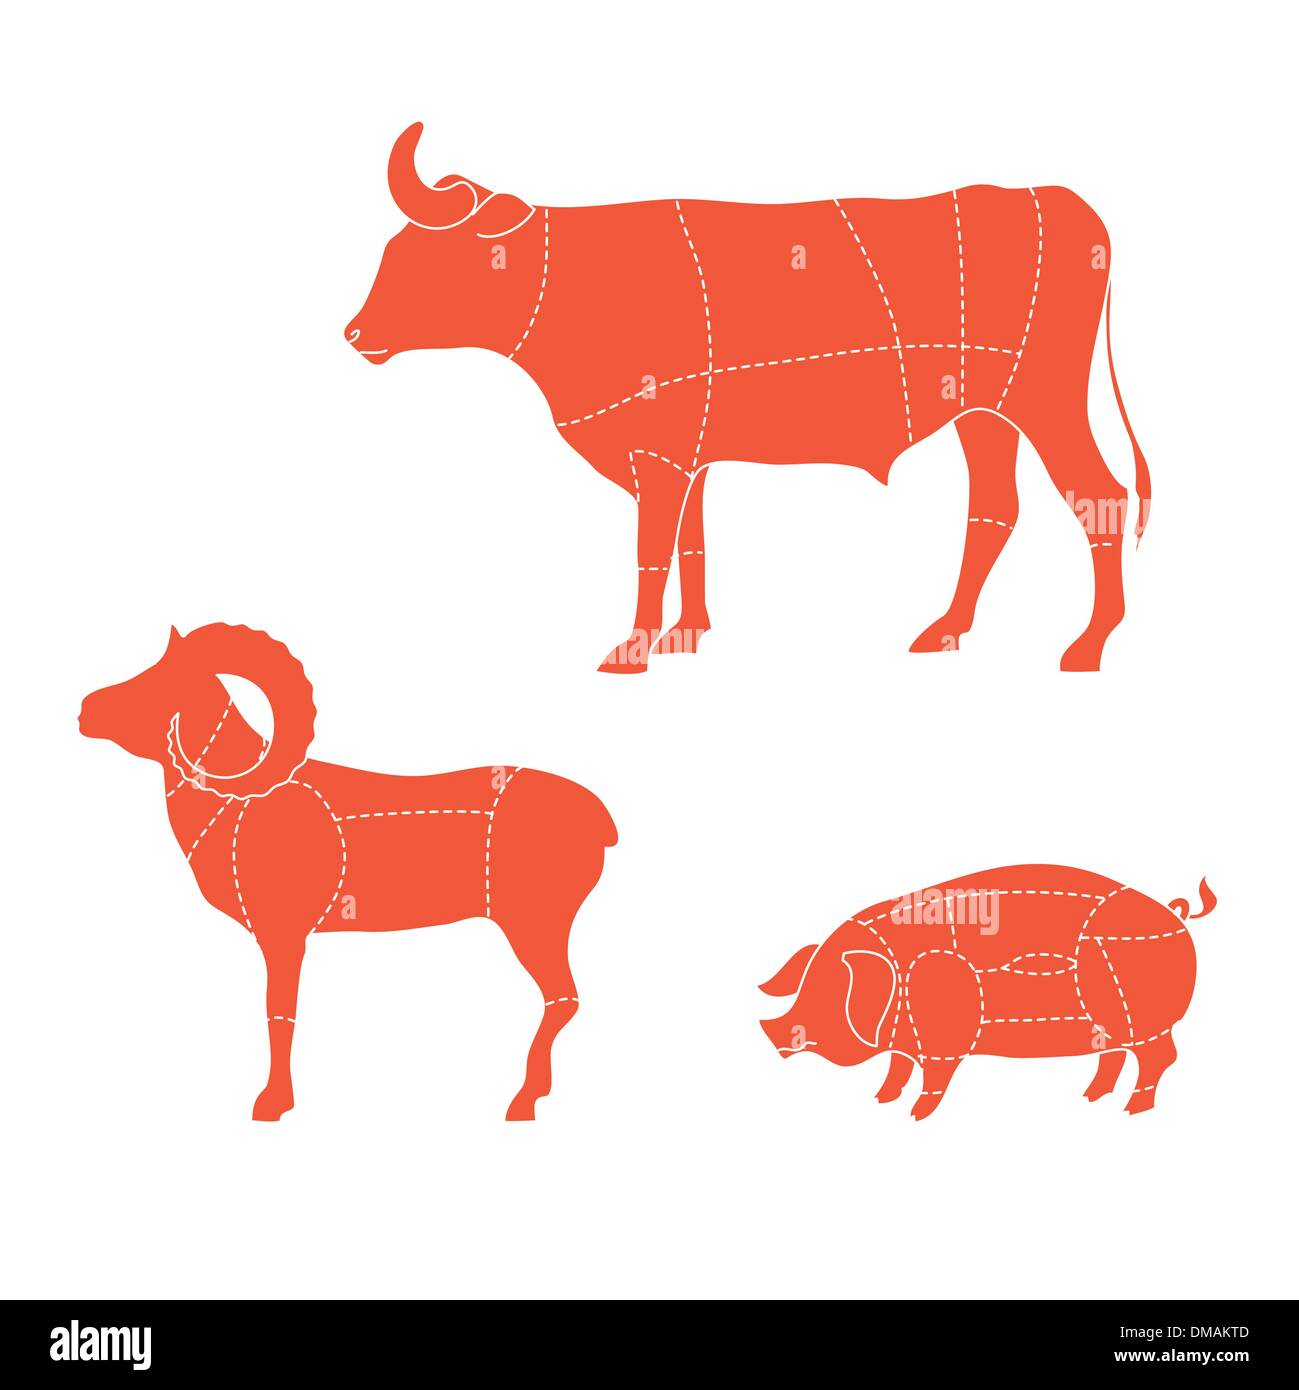 cuts-cow-mutton-pig - Stock Image